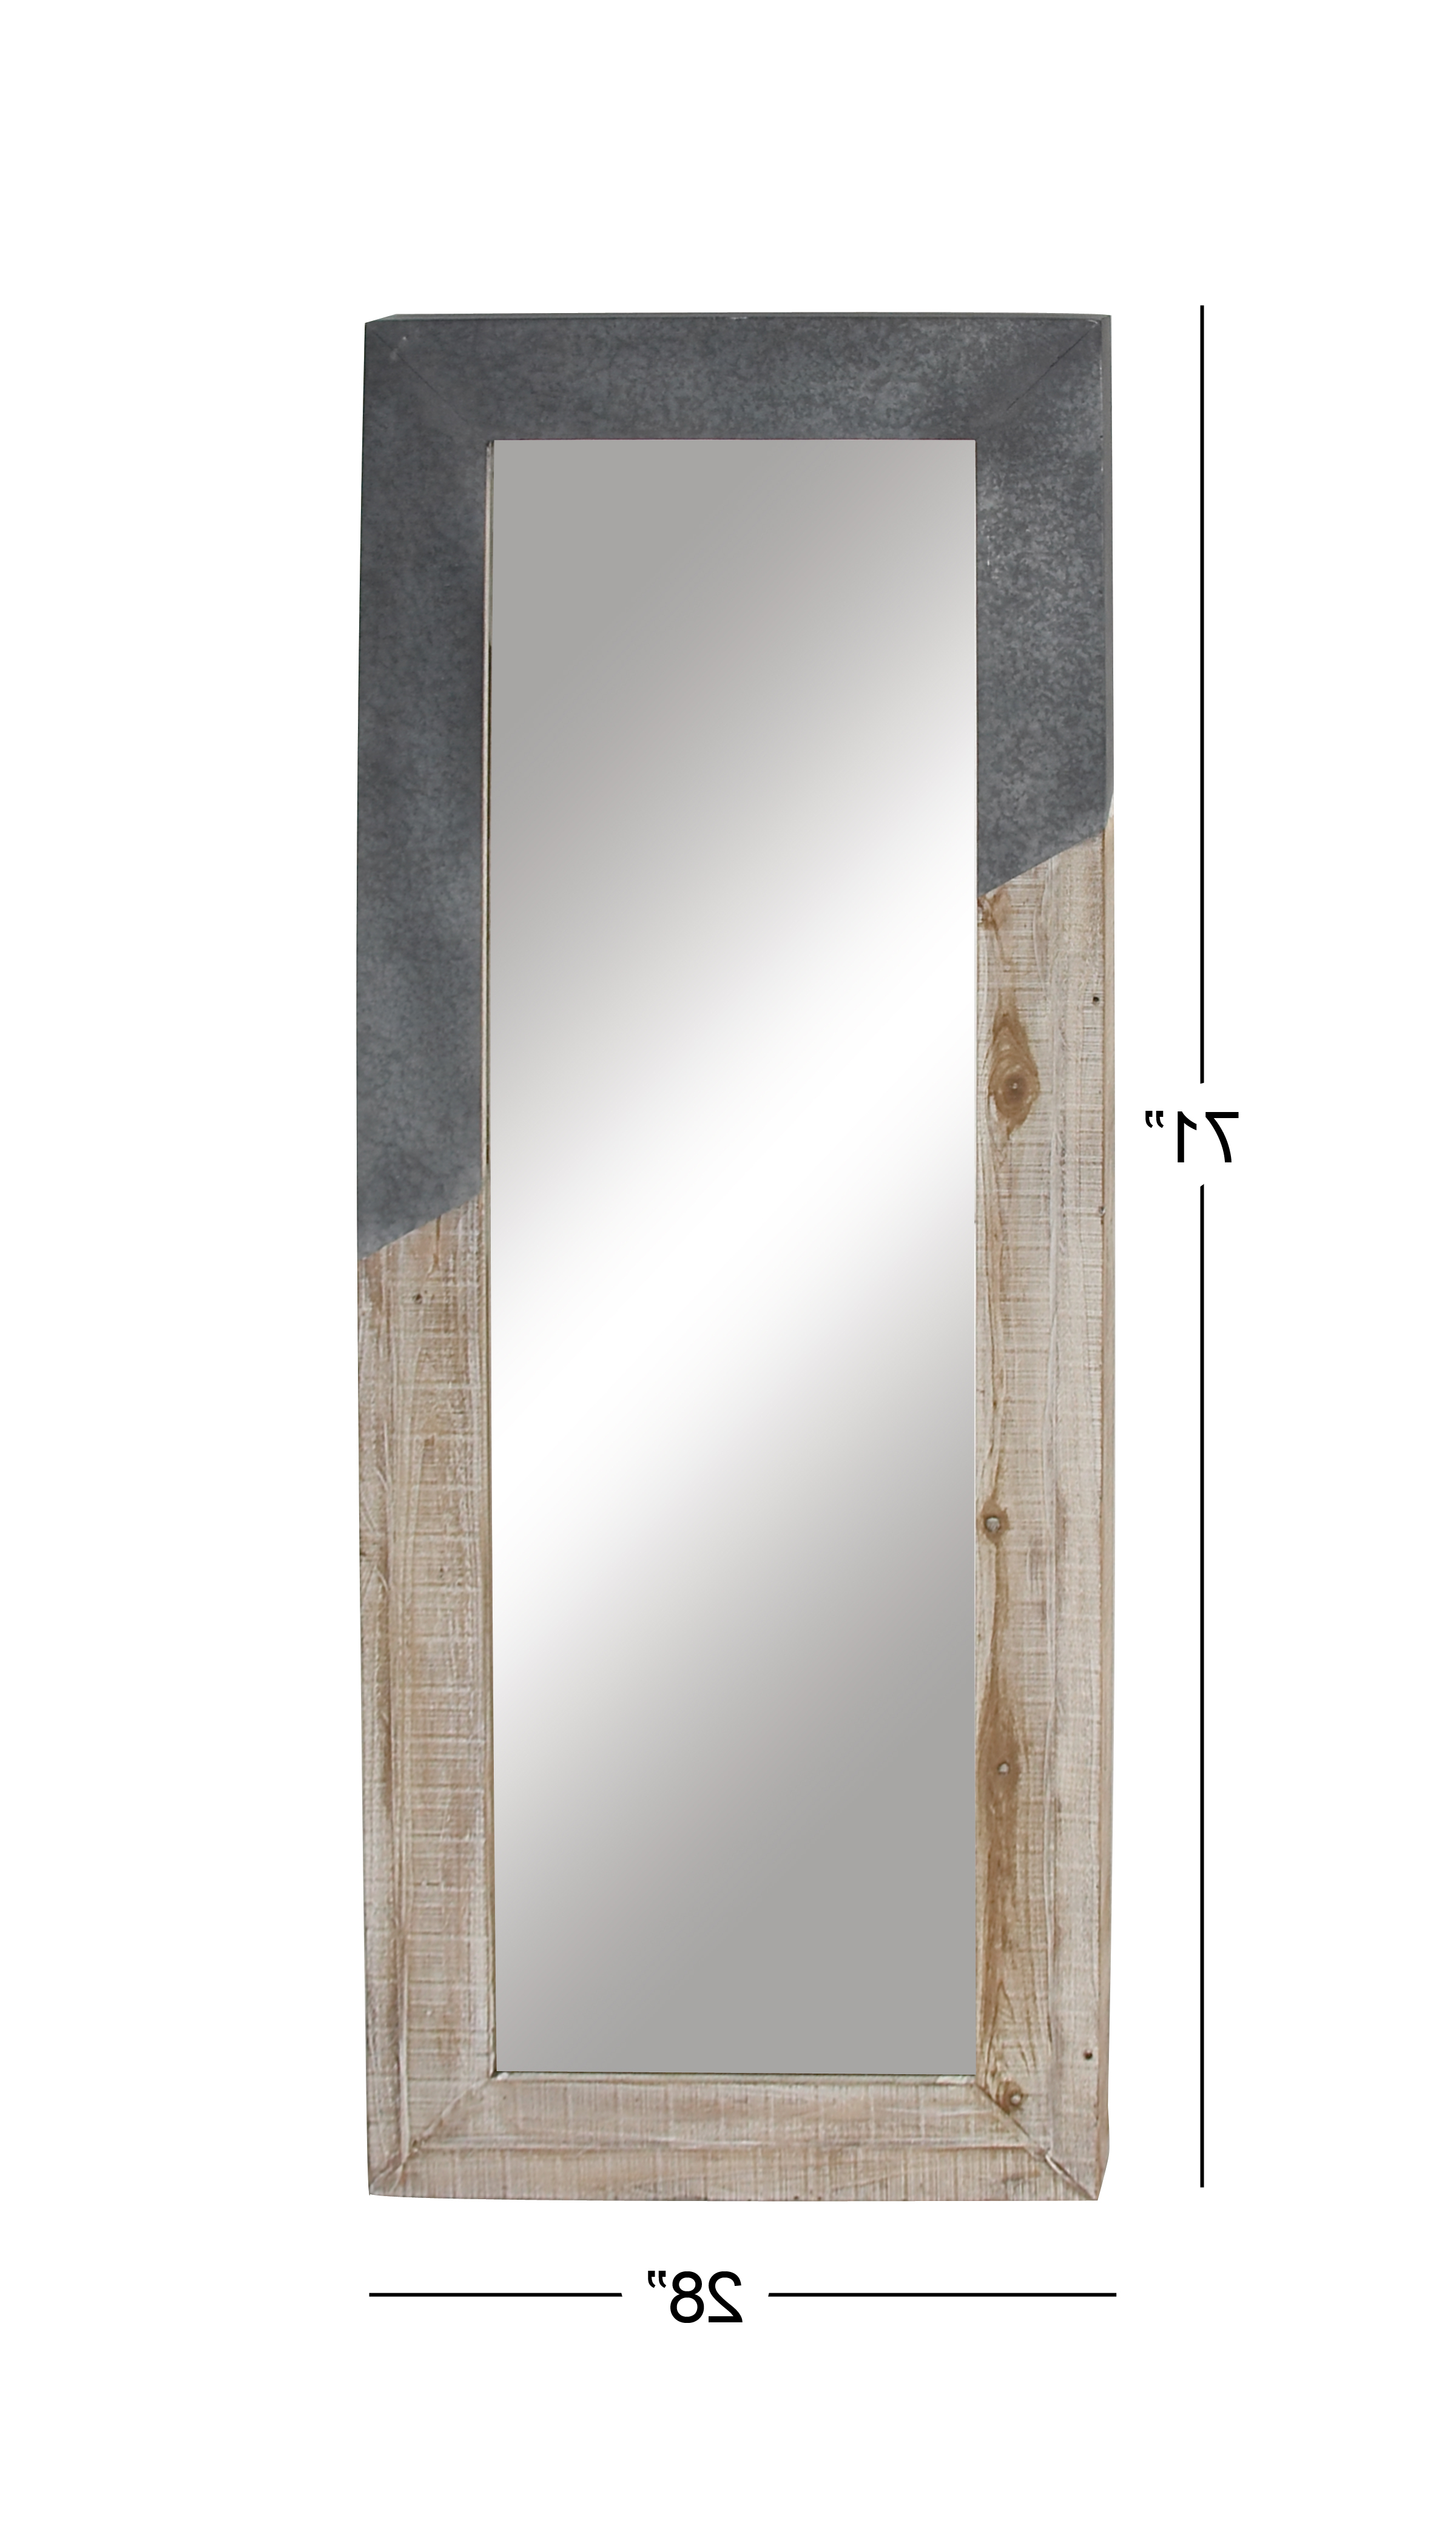 Best And Newest Rustic Wood Wall Mirrors Regarding Decmode Rustic Wood And Metal Rectangular Framed Full Glass Wall Mirror, Beige (View 13 of 20)